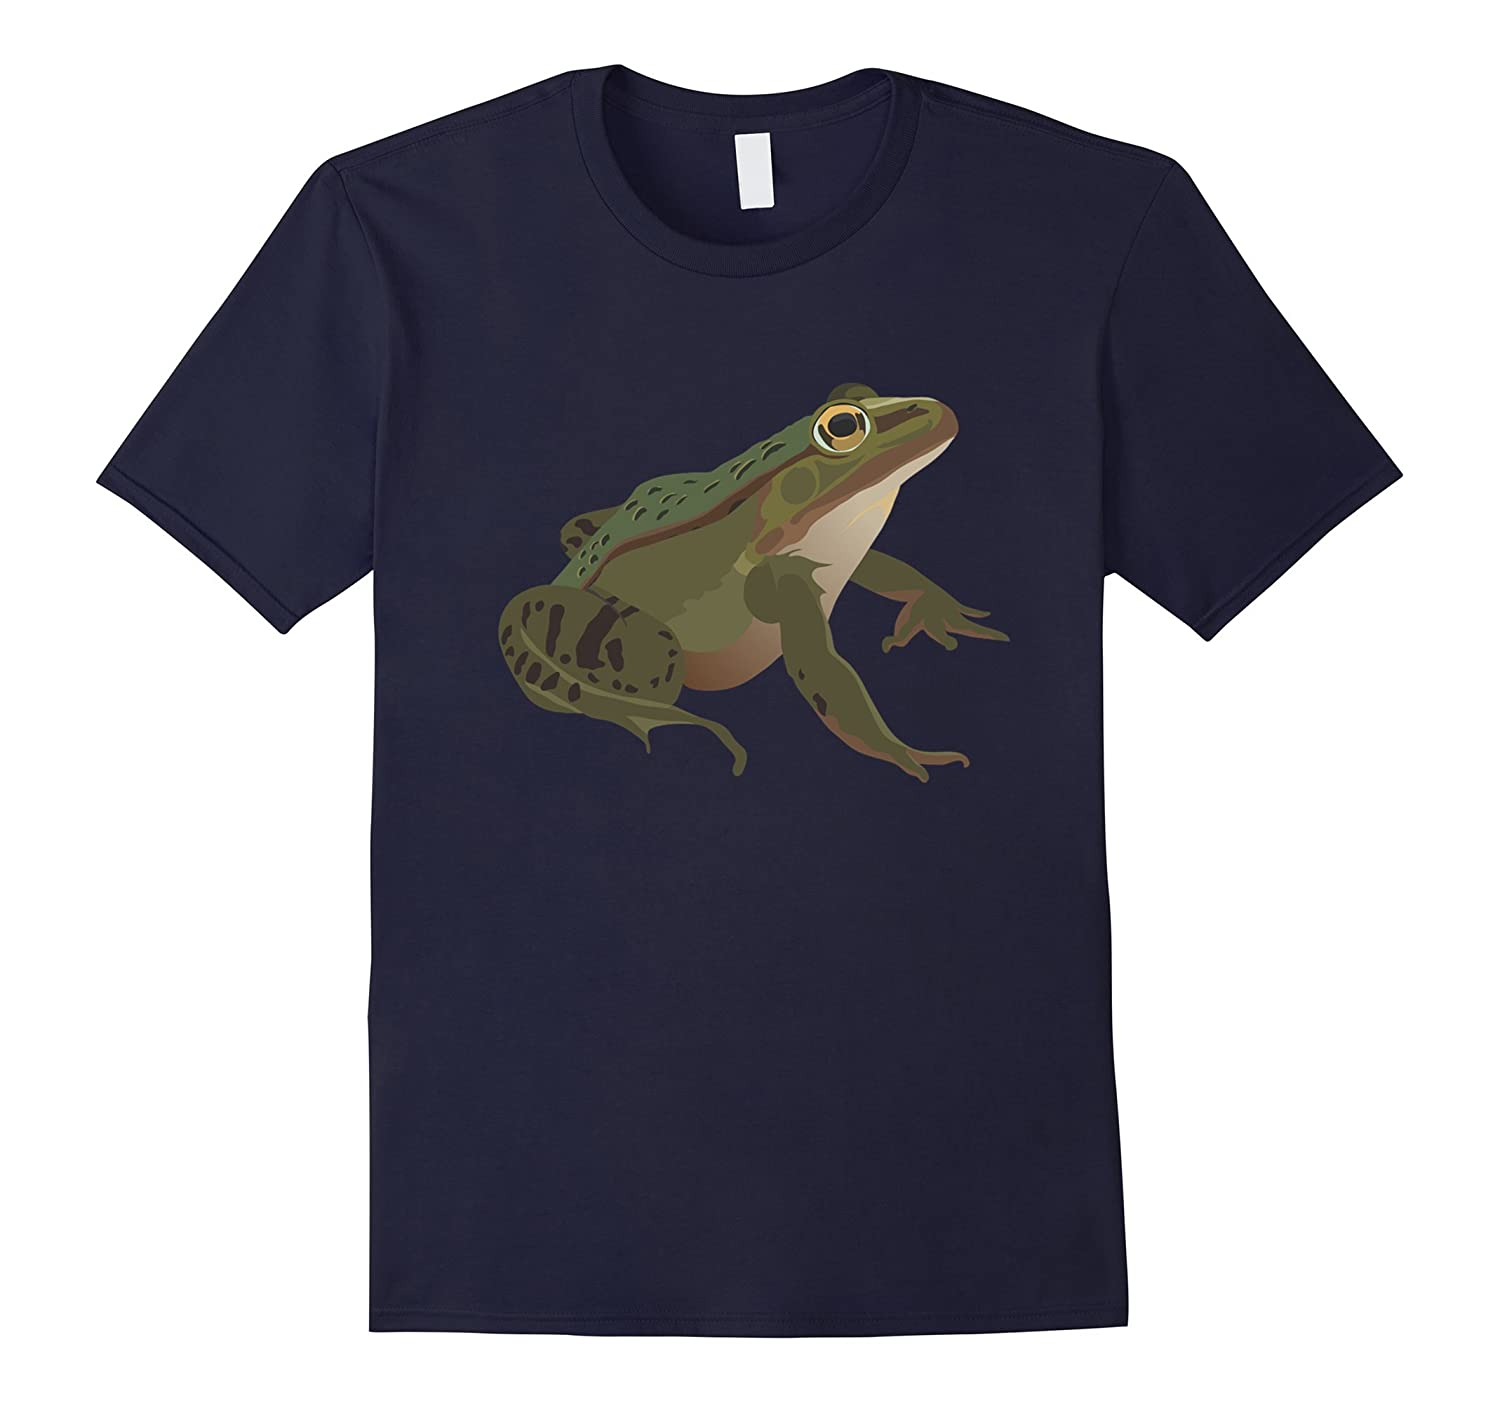 Camo Frog TShirt camouflage Military Style Parody Fun-TJ